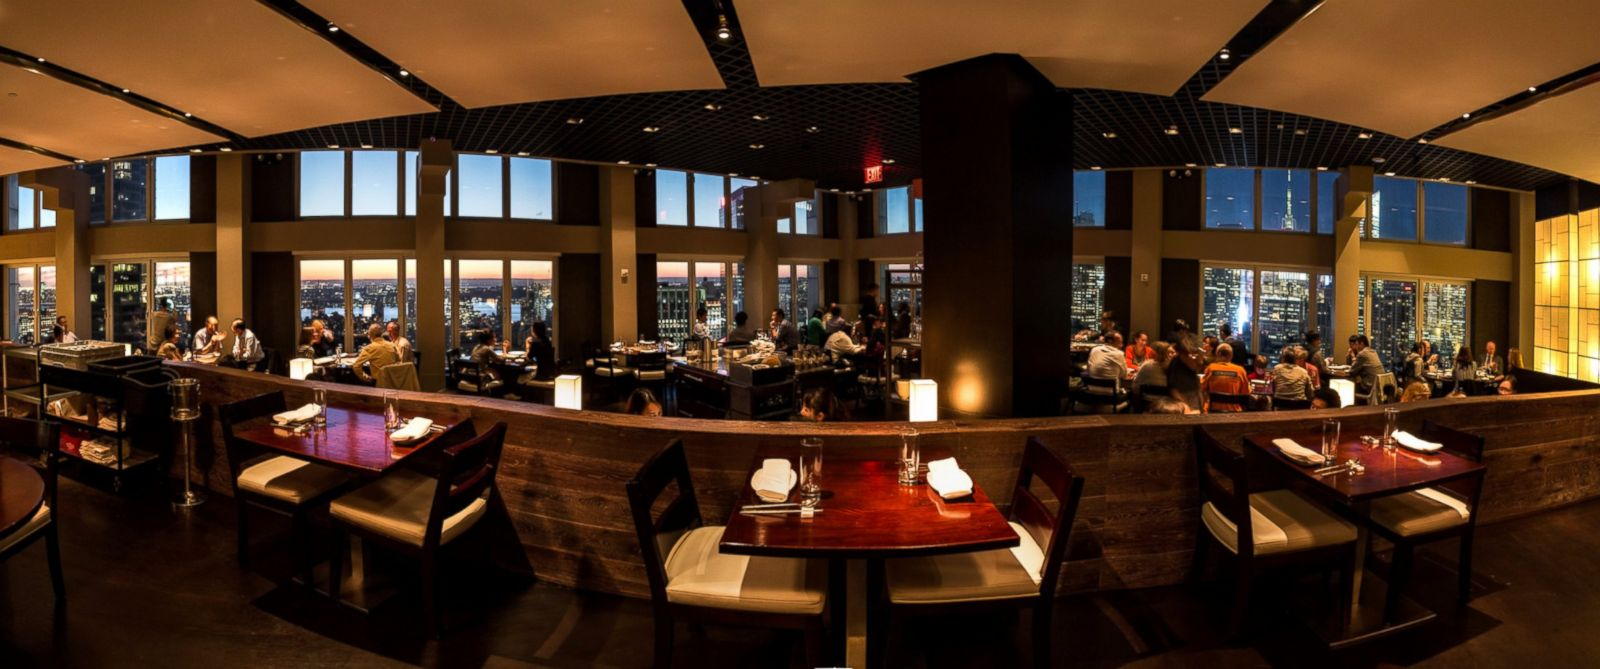 "PHOTO: Gaonnuri is a ""hidden"" Korean restaurant in a penthouse in New York City midtown."